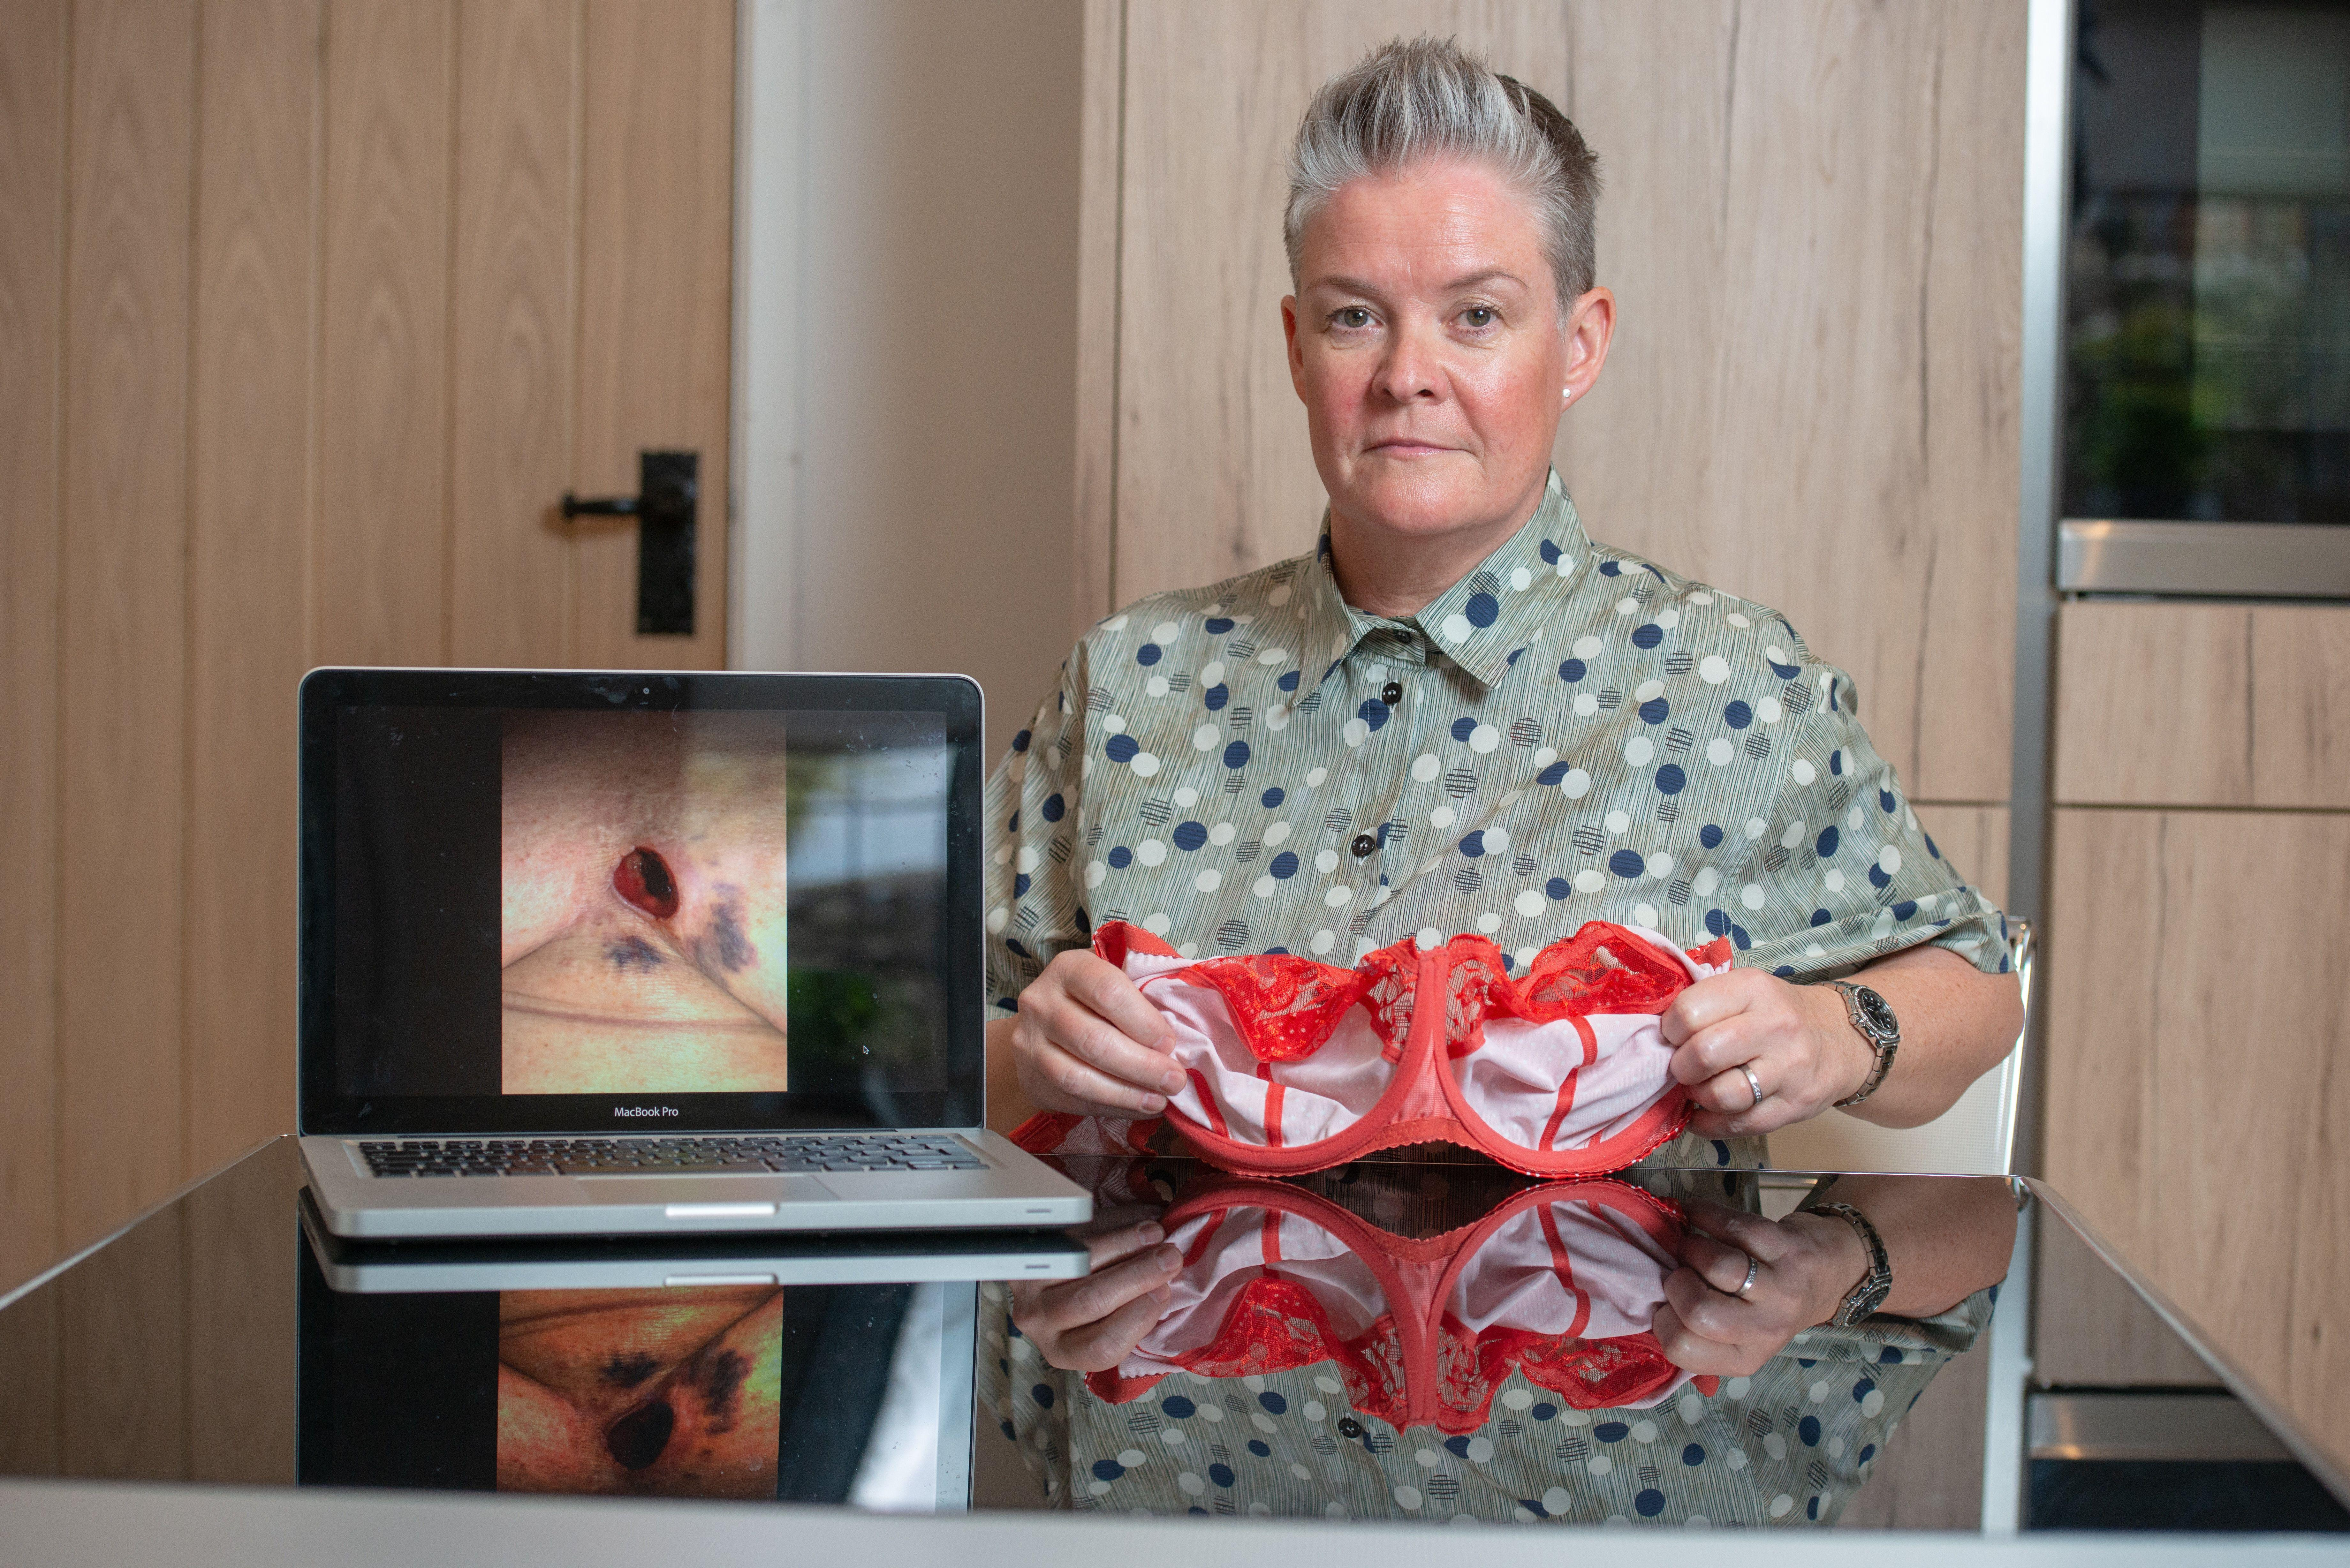 Lynne pictured with one of the bras which caused her wound. [Photo: SWNS]